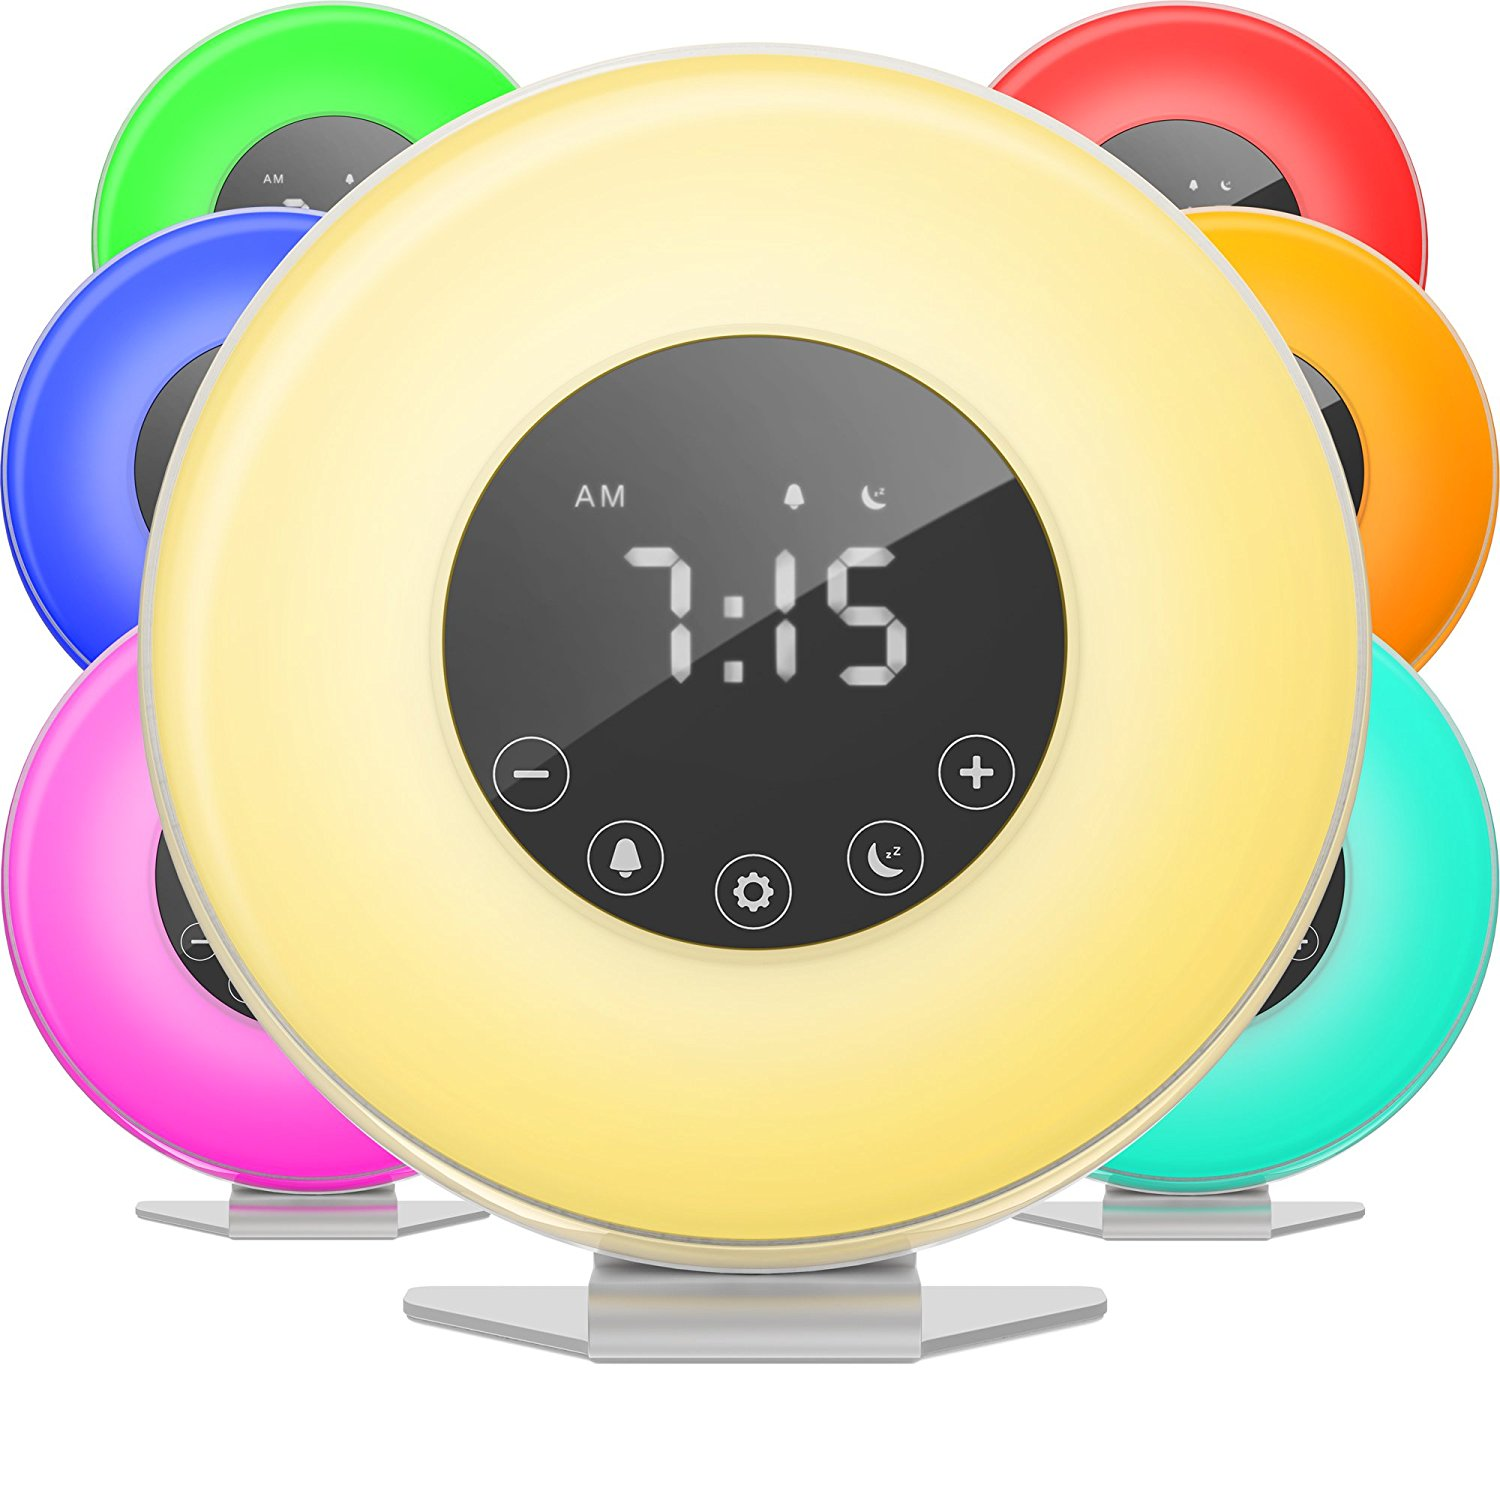 hOmelabs wakeup clock amazon